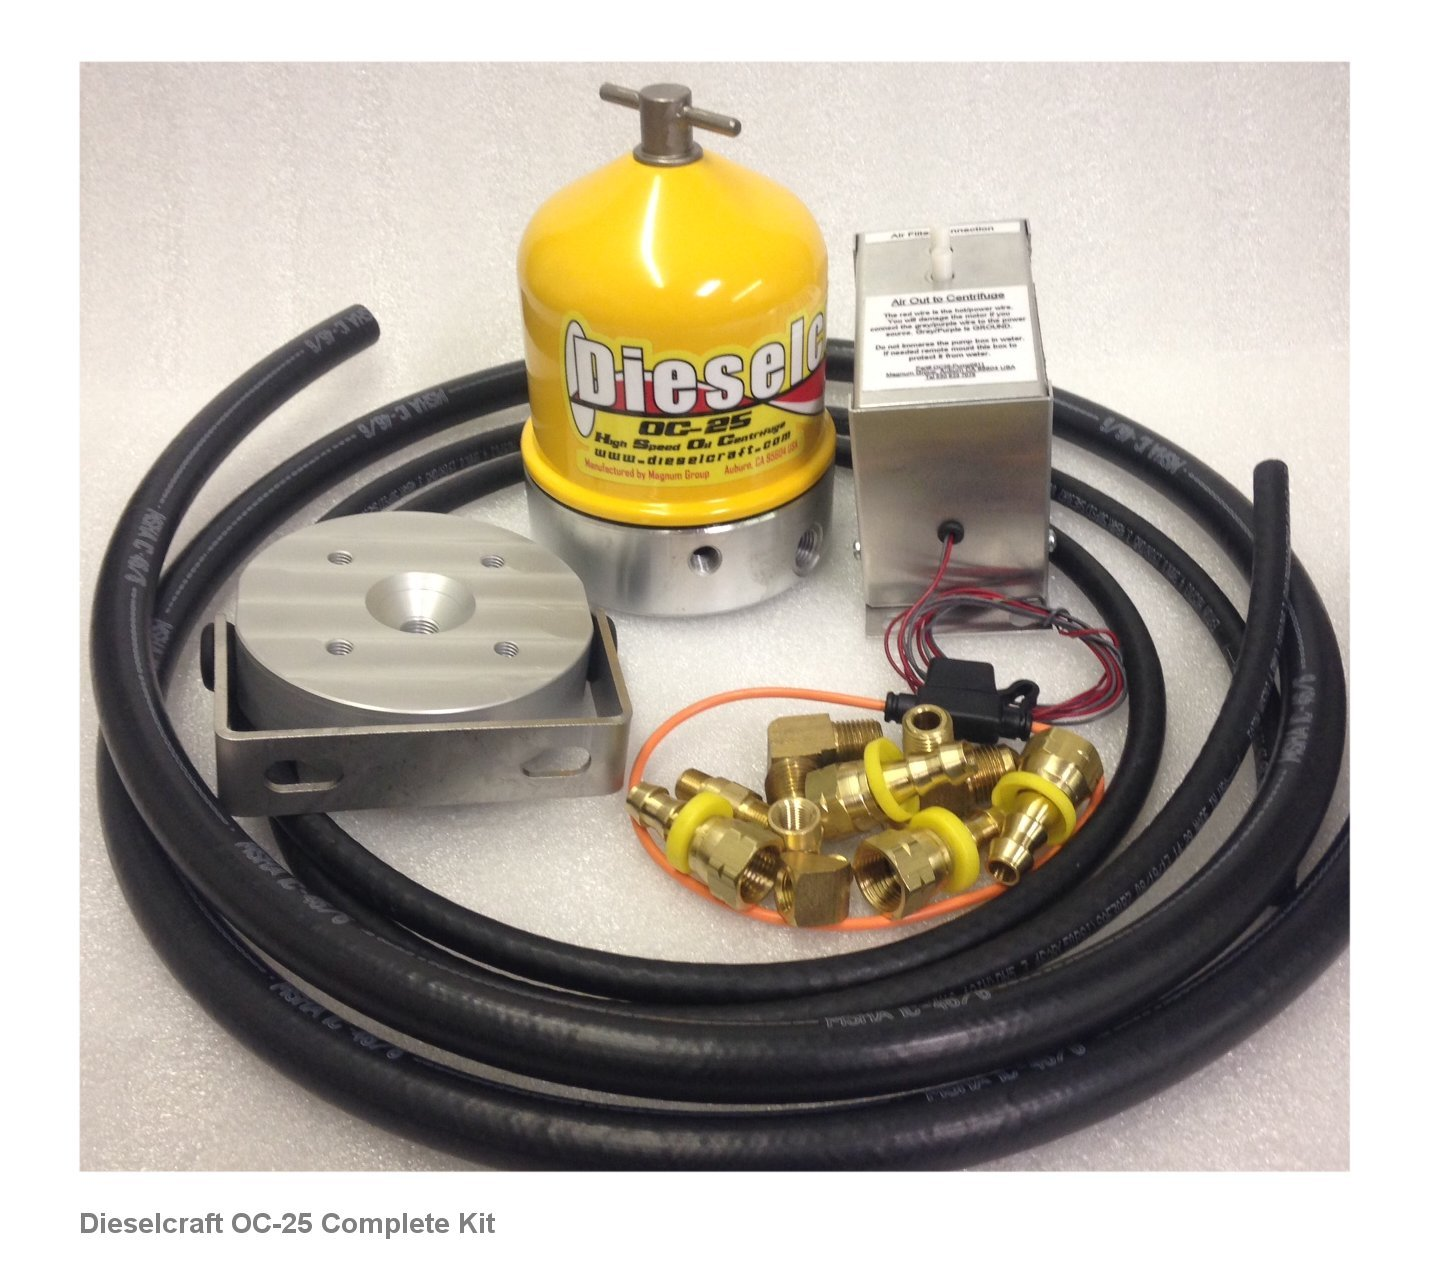 Bypass Systems for Dodge Cummins and Ford Diesels